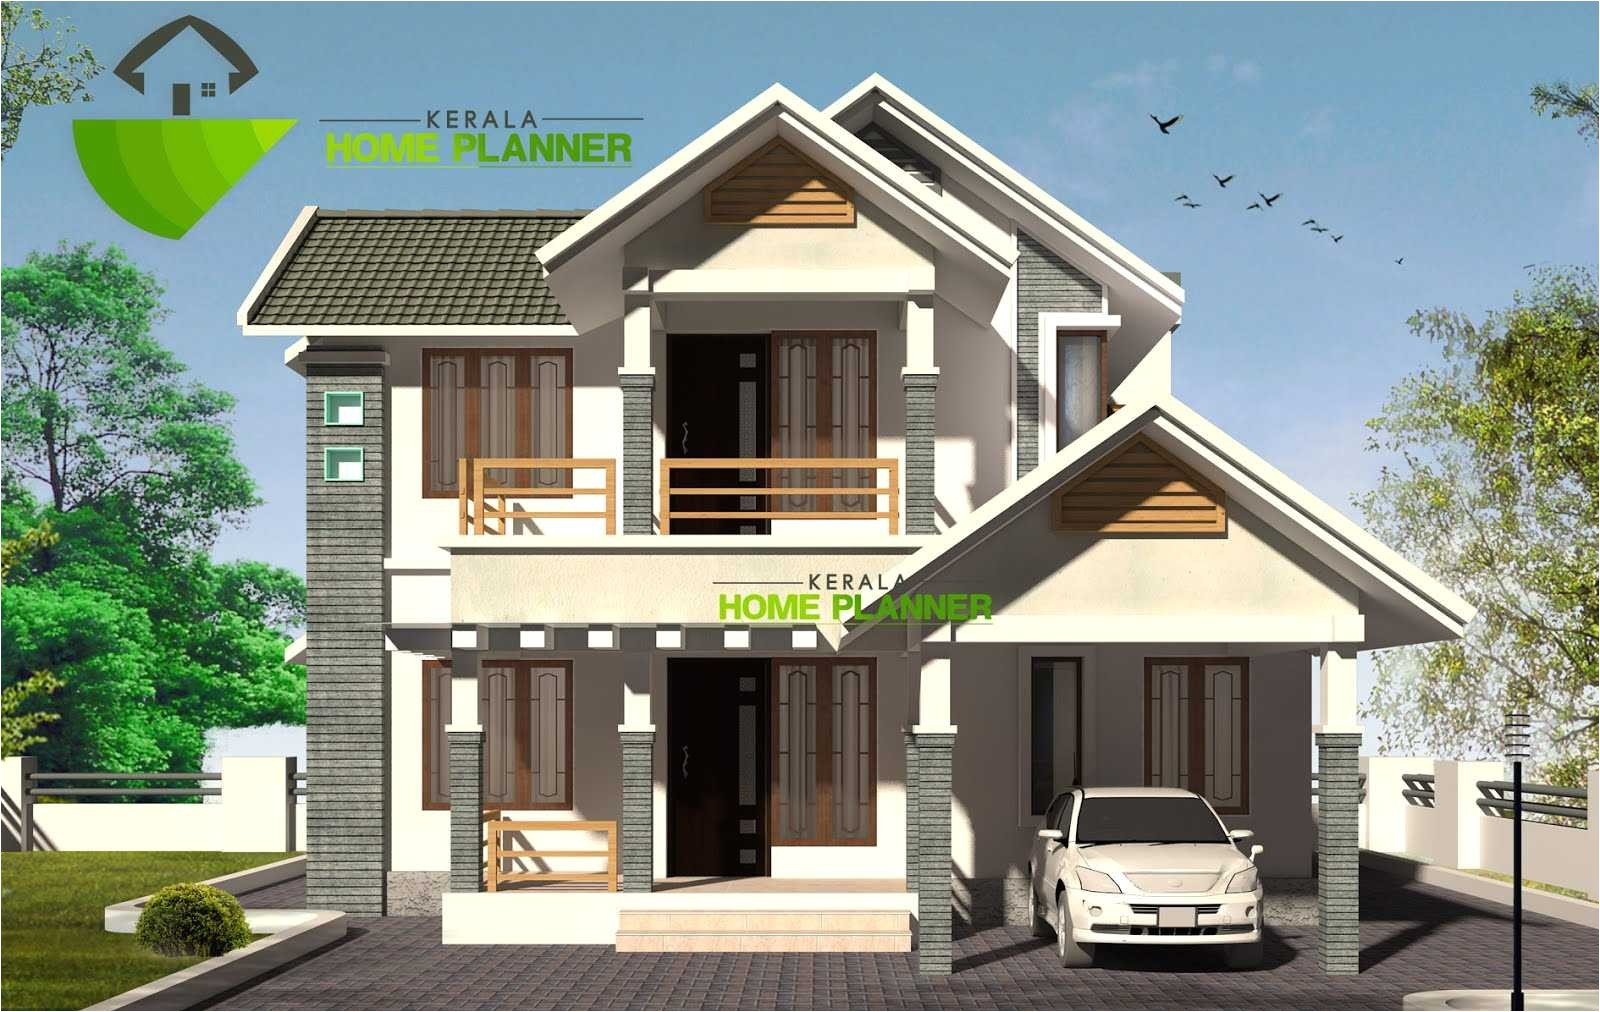 home plan in kerala low budget small budget house plans kerala of home plan in kerala low budget - 15+ Low Budget Luxury Small House Design Pictures